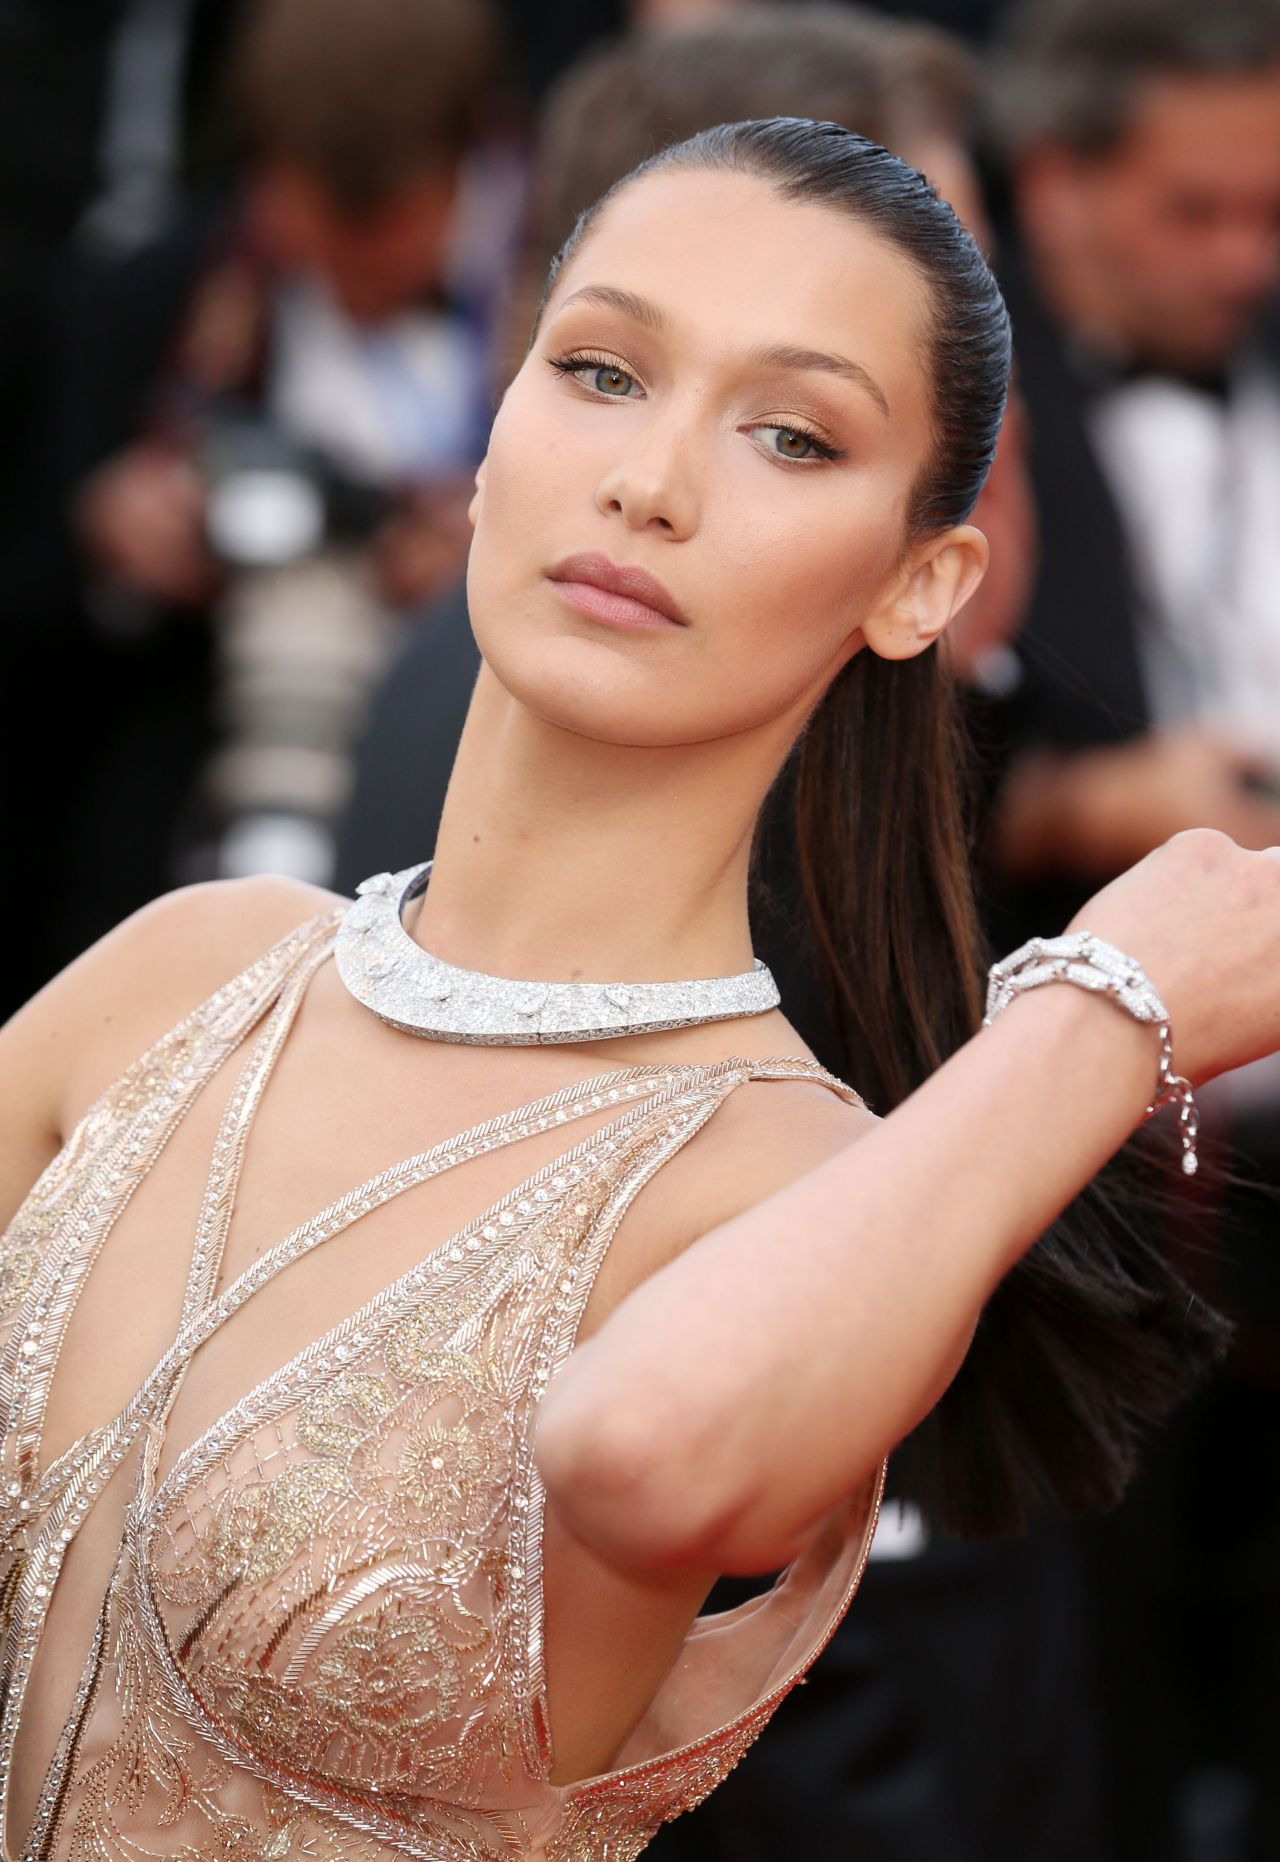 Bella Hadid At Ralph Lauren Runway Show At New York: The 69th Annual Cannes Film